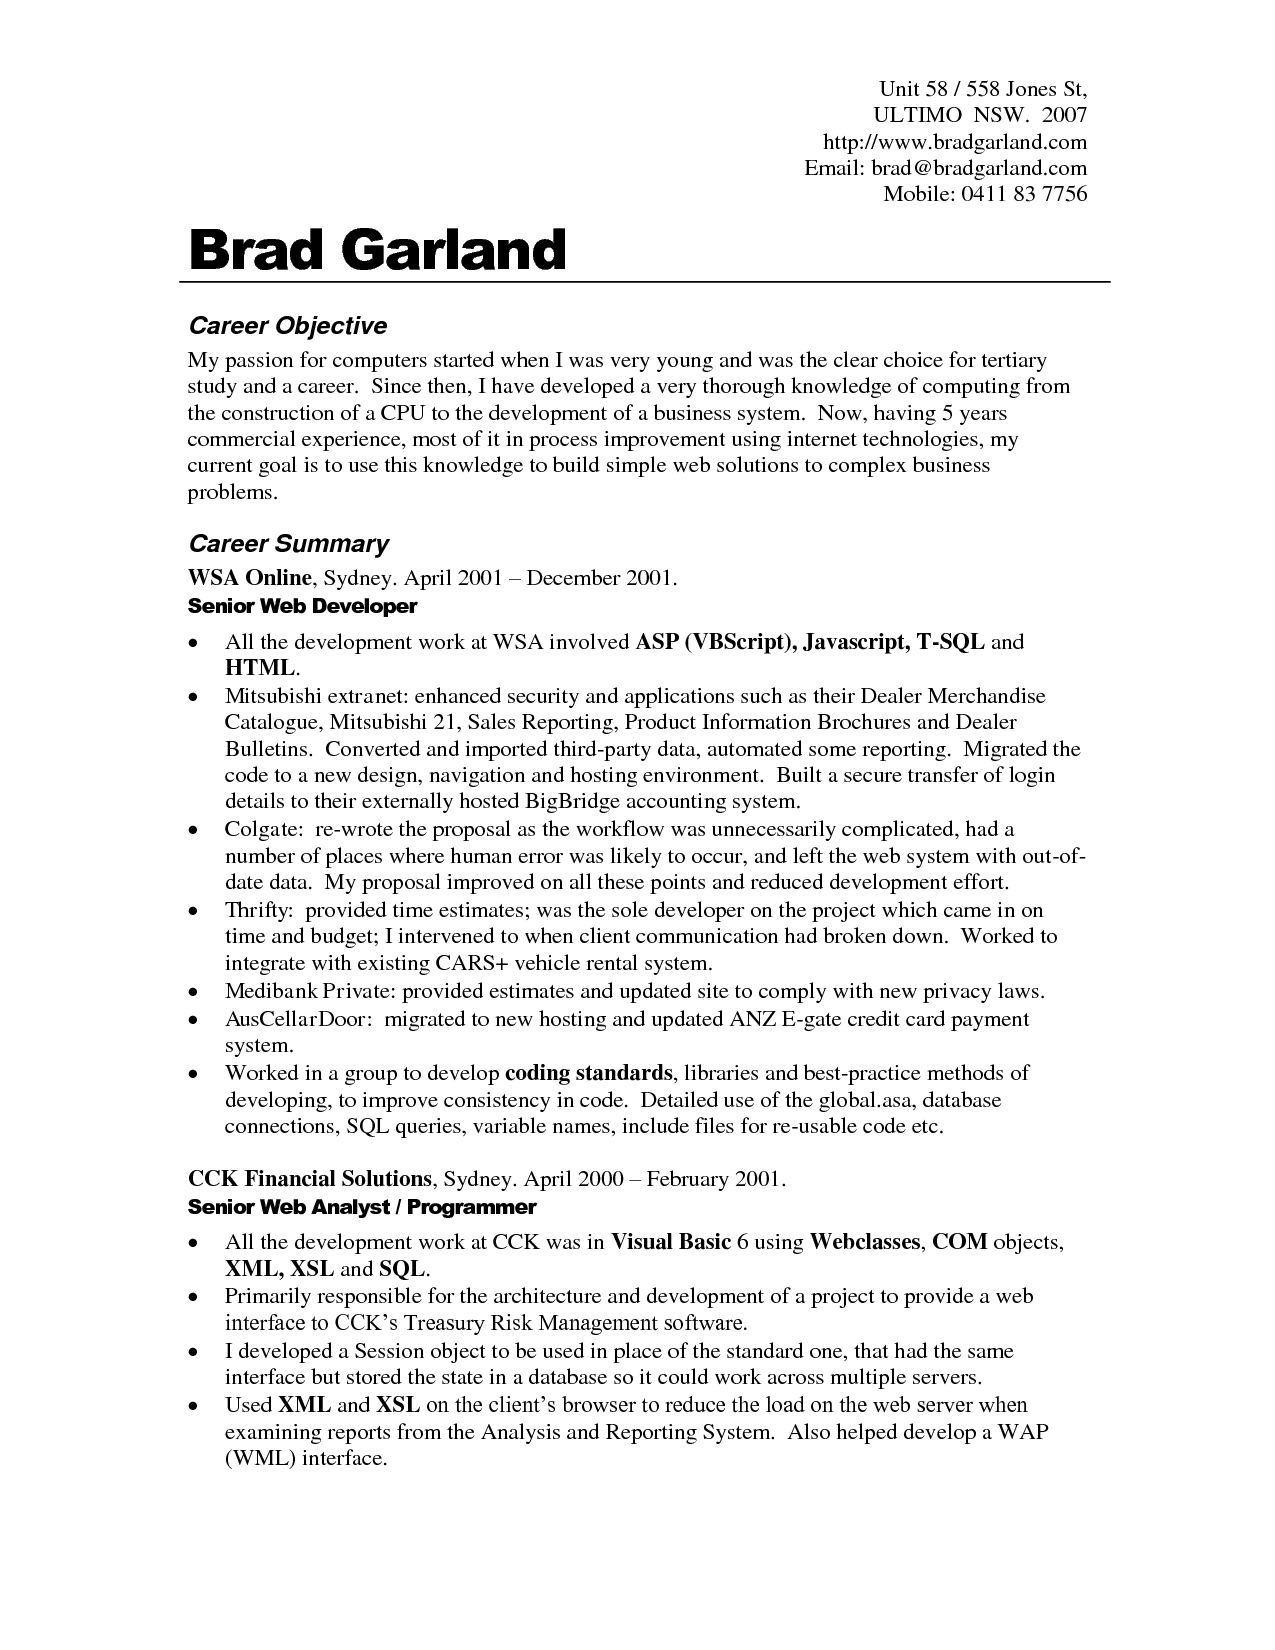 Sample Objectives For Resume Sample Resume Action Verbs For Lawyers Formatting Back Post